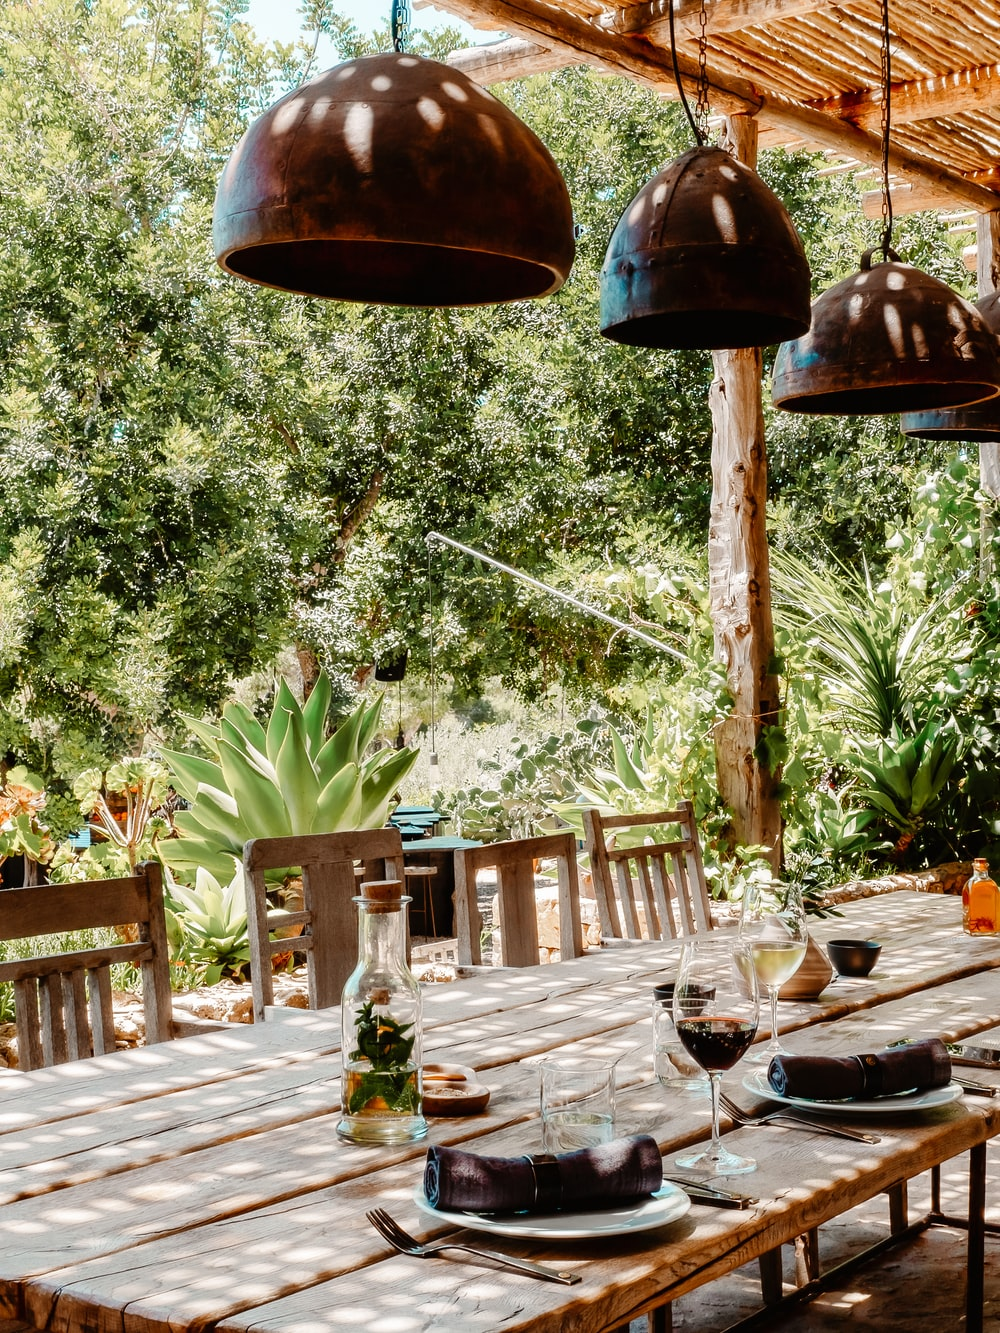 brown wooden table with chairs and green plant